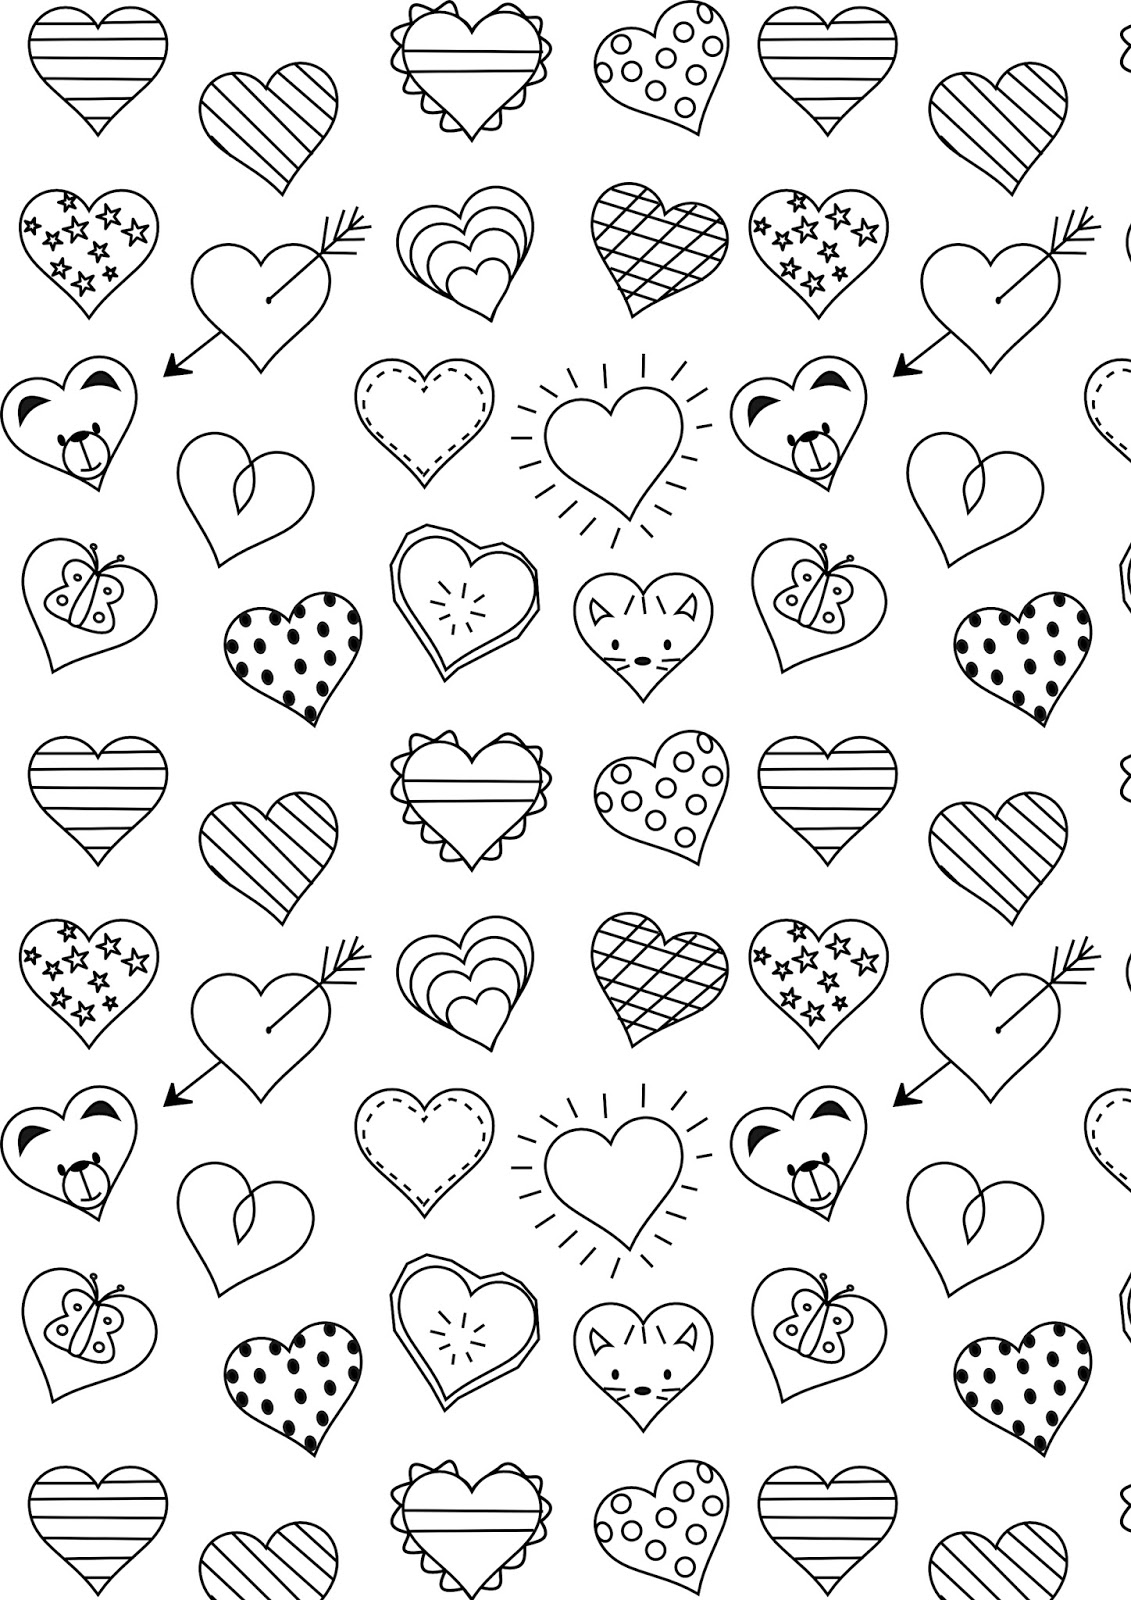 heart for coloring free printable heart coloring pages for kids heart coloring for 1 1